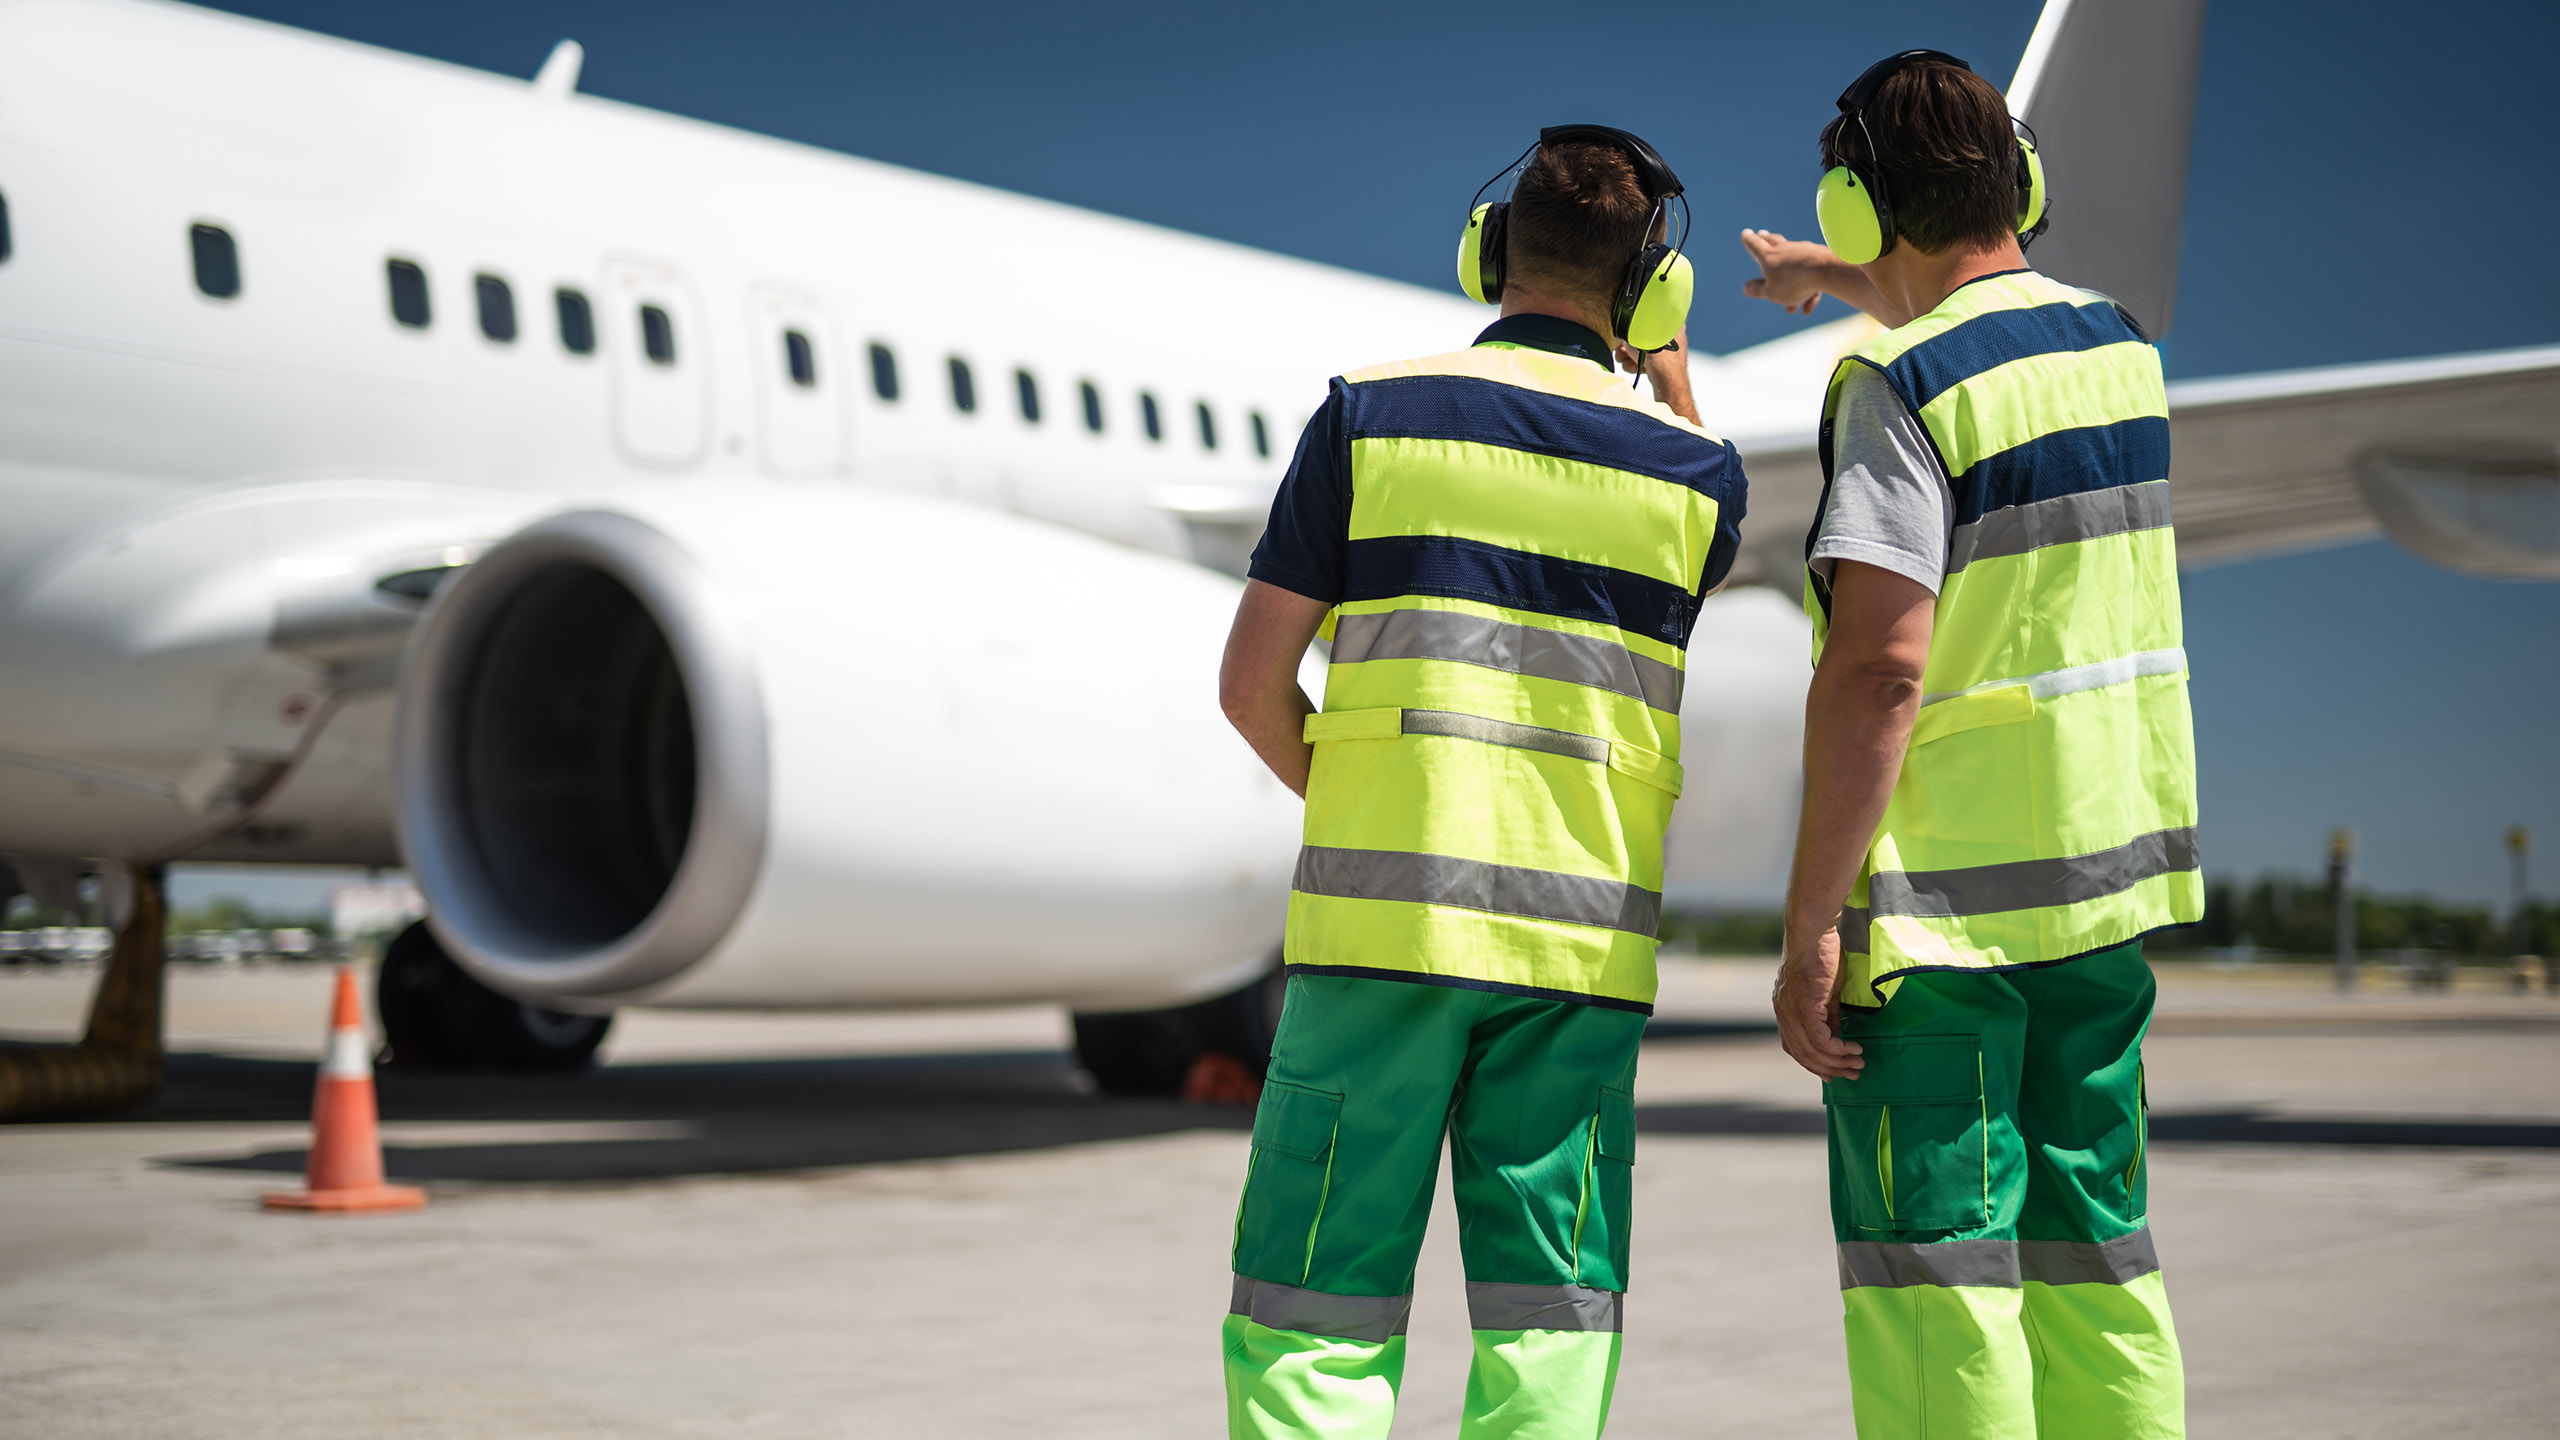 Countdown to Zero: What you need to know about zero emissions in the airline industry